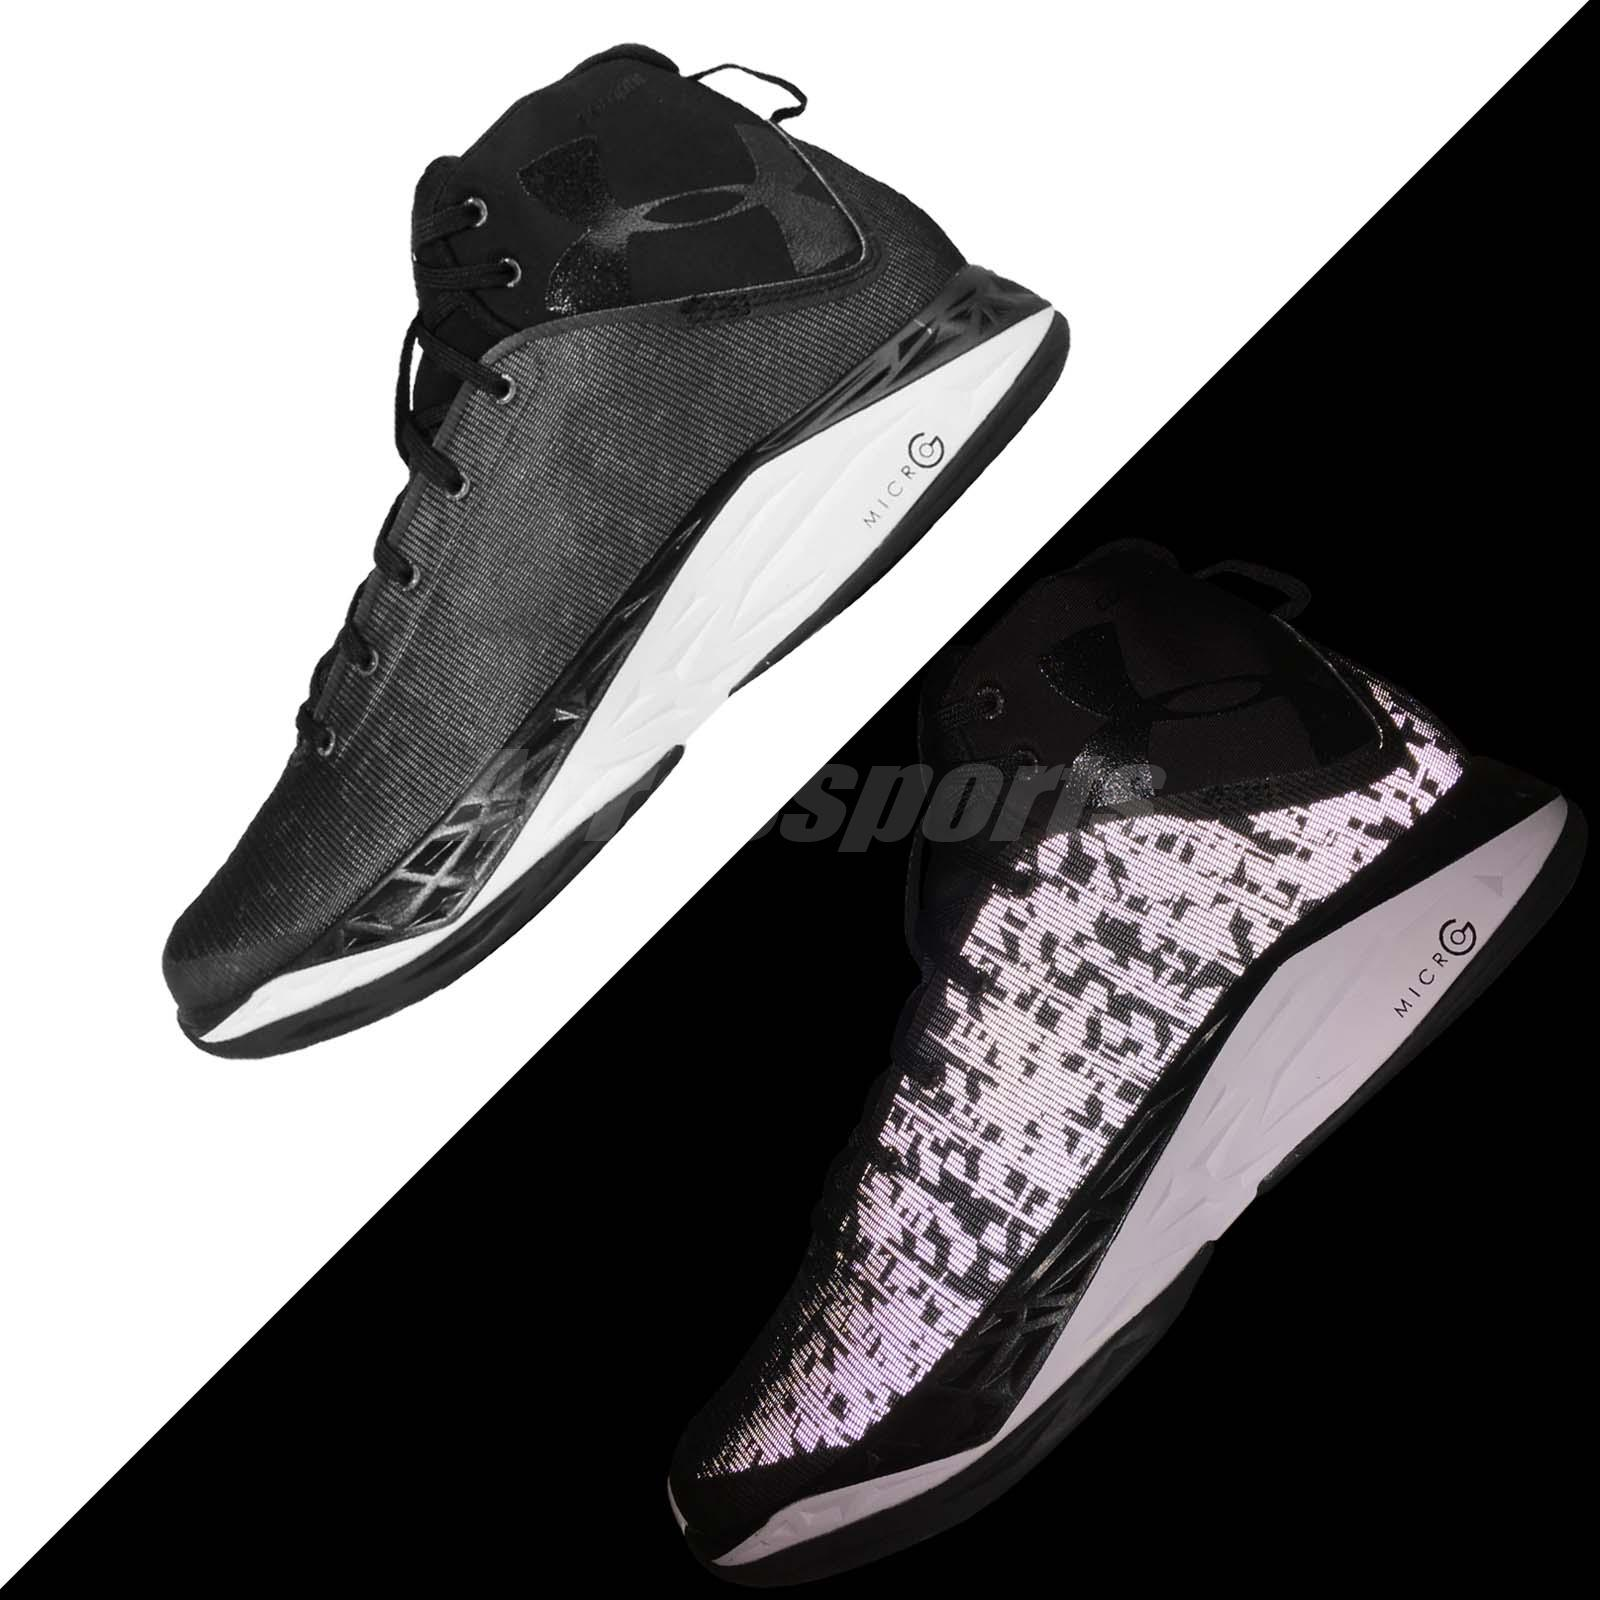 950bbb55bffe cheap under armour basketball shoes black and white